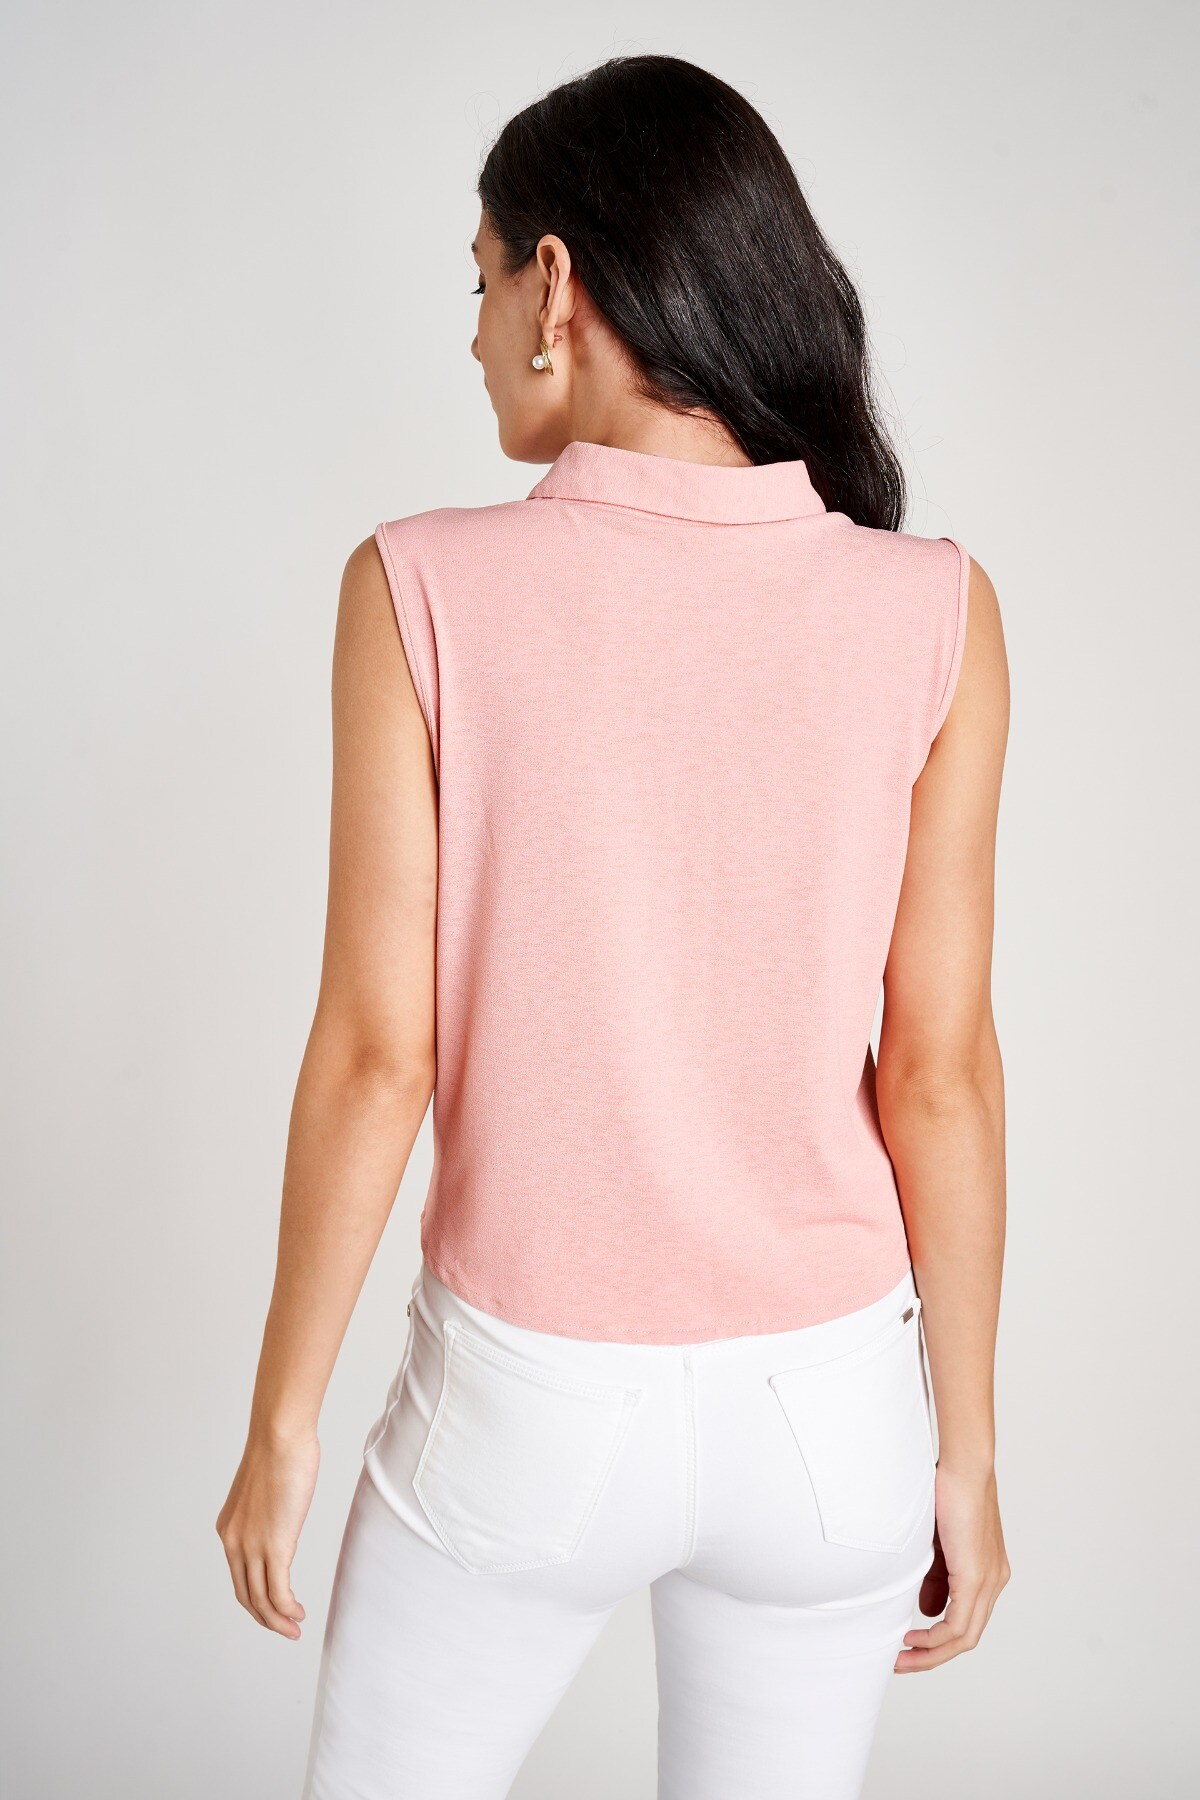 AND | PINK TOP